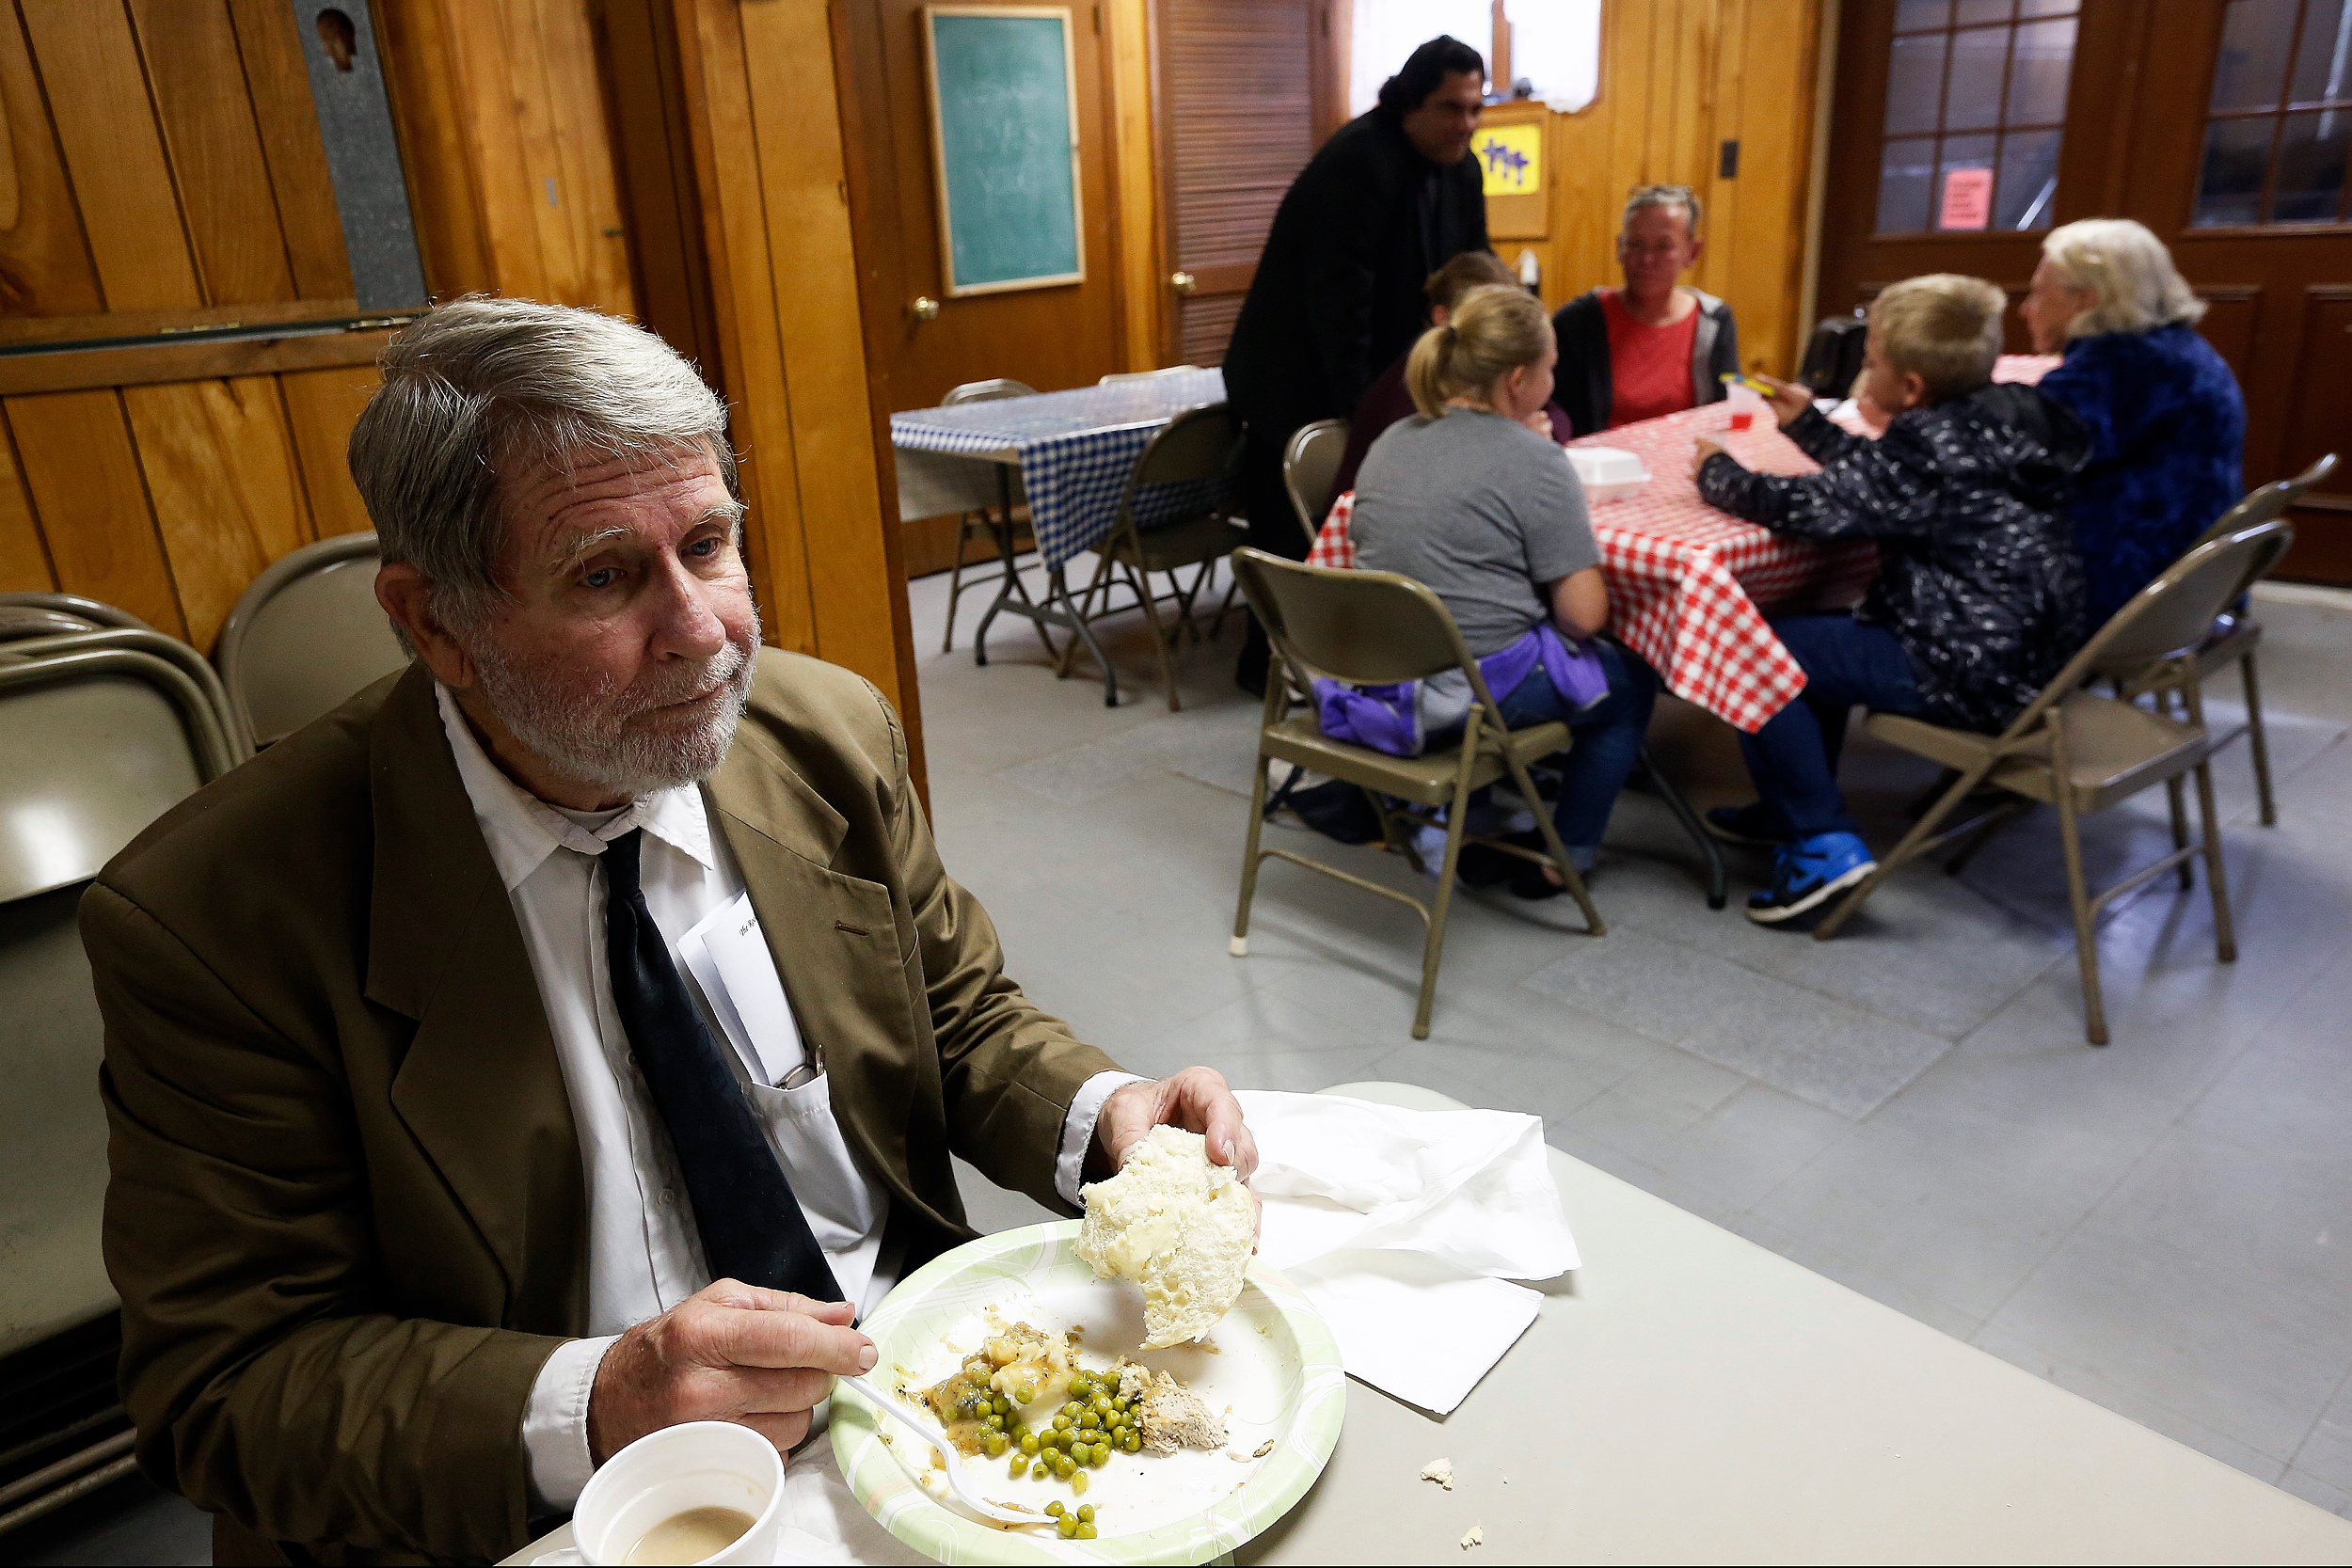 Ron eats lunch alone after church. Free meals are provided to people that attend church.